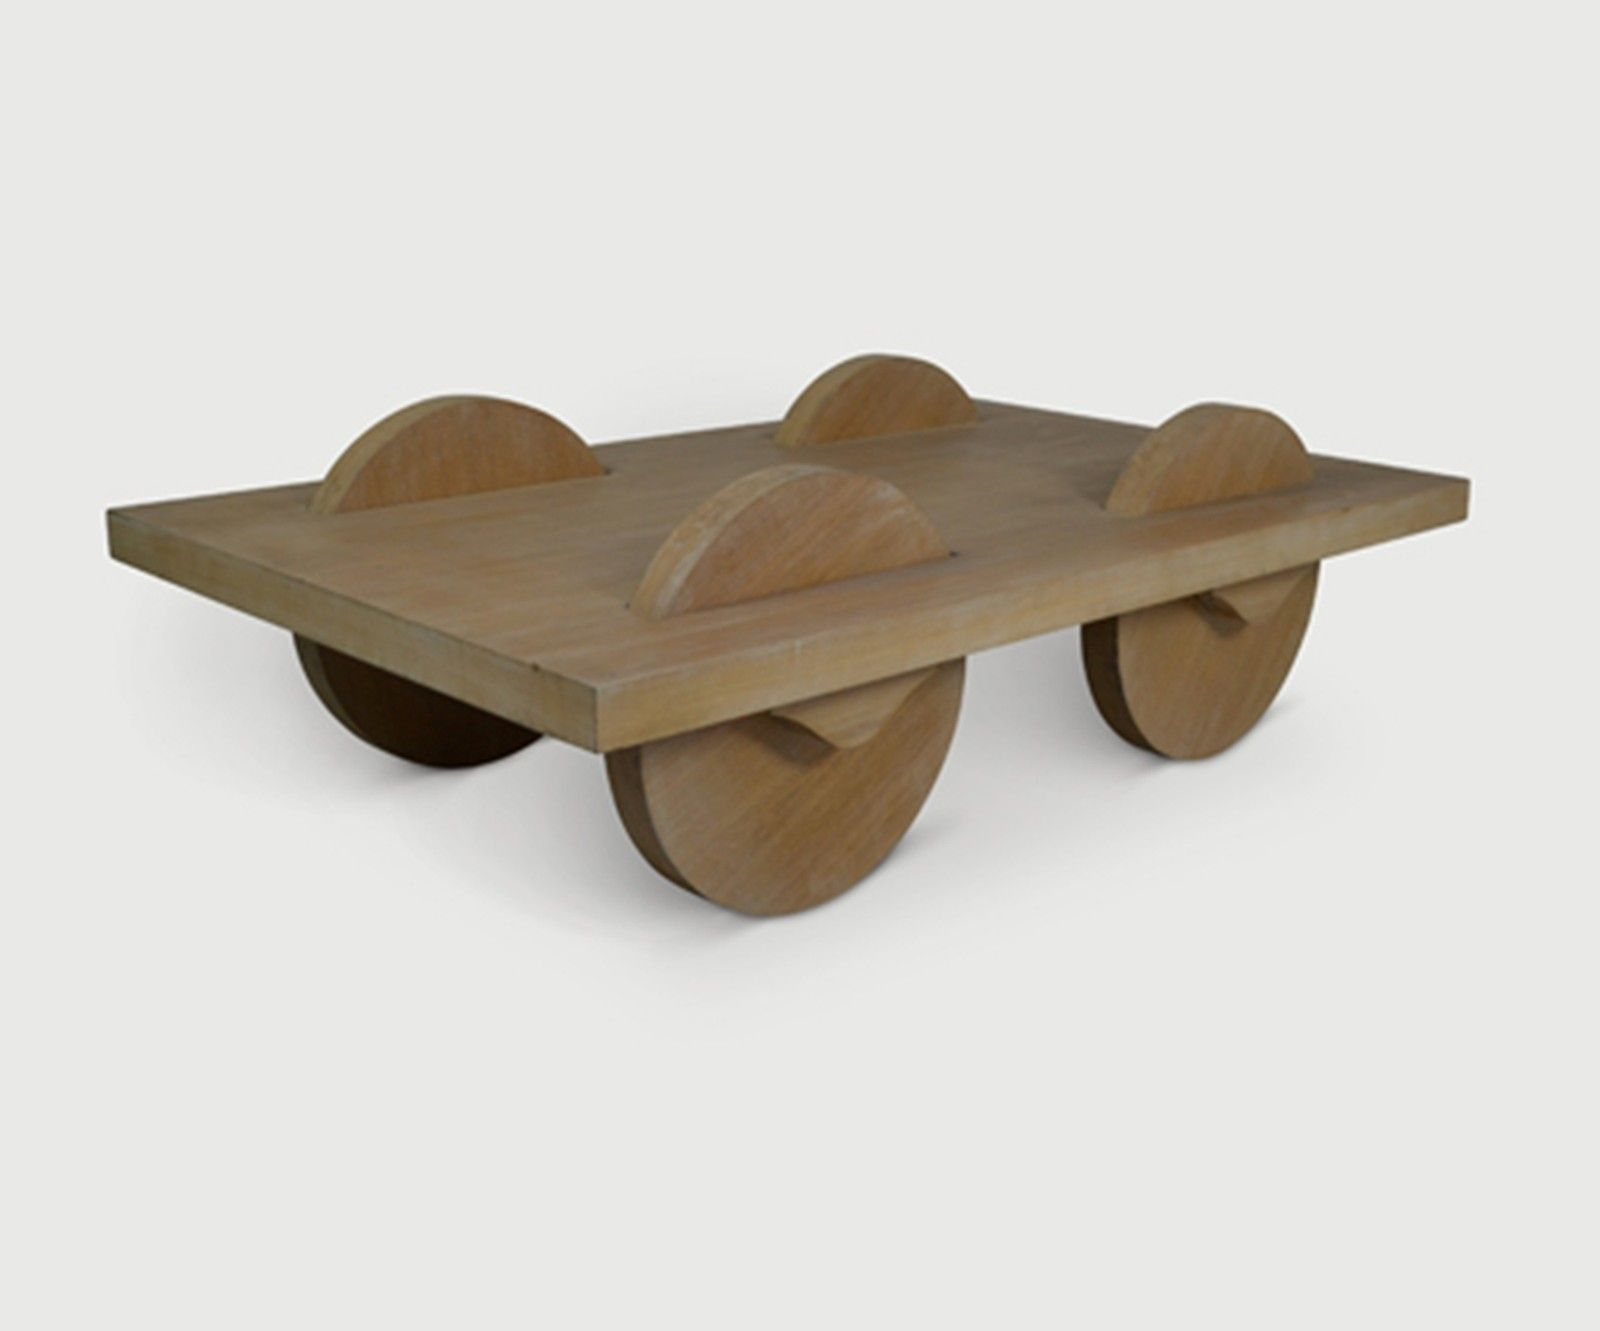 Quirky Wooden C1975 Wheel Coffee Table Available From Moioli Gallery On The Dc Coffee Table With Wheels Vintage Coffee Coffee And Cocktail Tables [ 1331 x 1600 Pixel ]